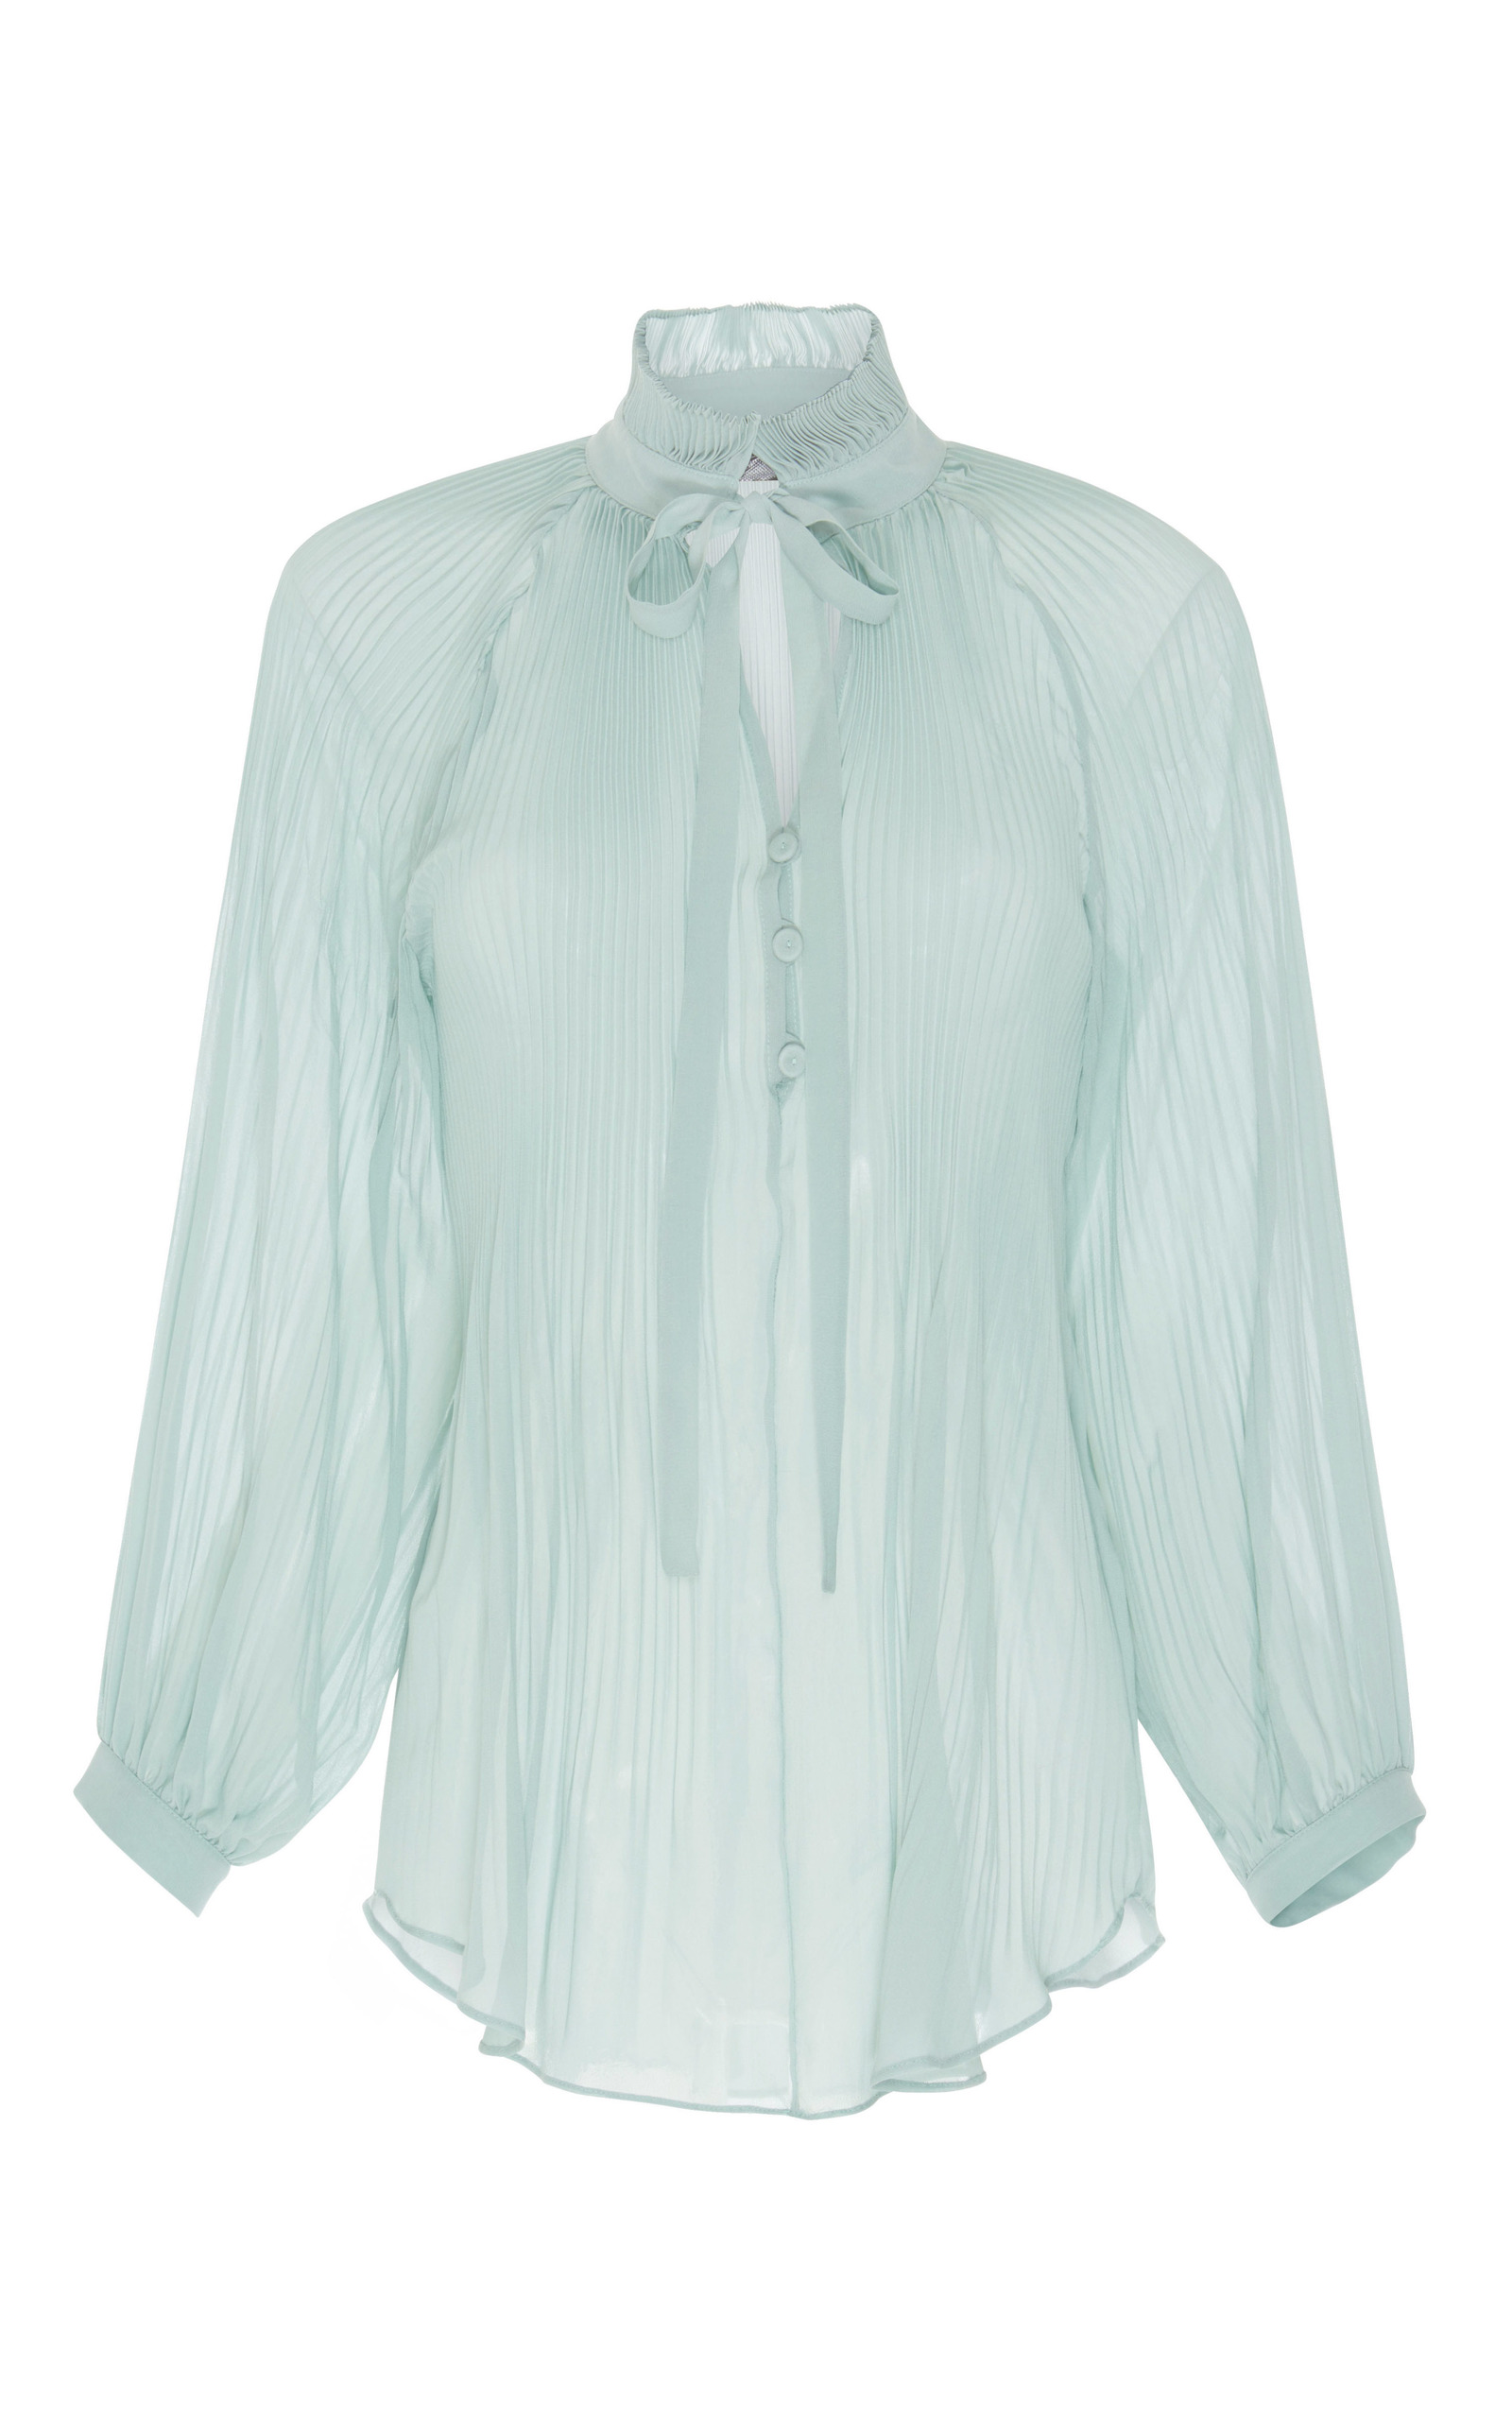 Long Sleeve Blouse Luisa Beccaria Fashionable Cheap Online Outlet Big Discount Outlet New Styles Cheap And Nice Vo1EJs